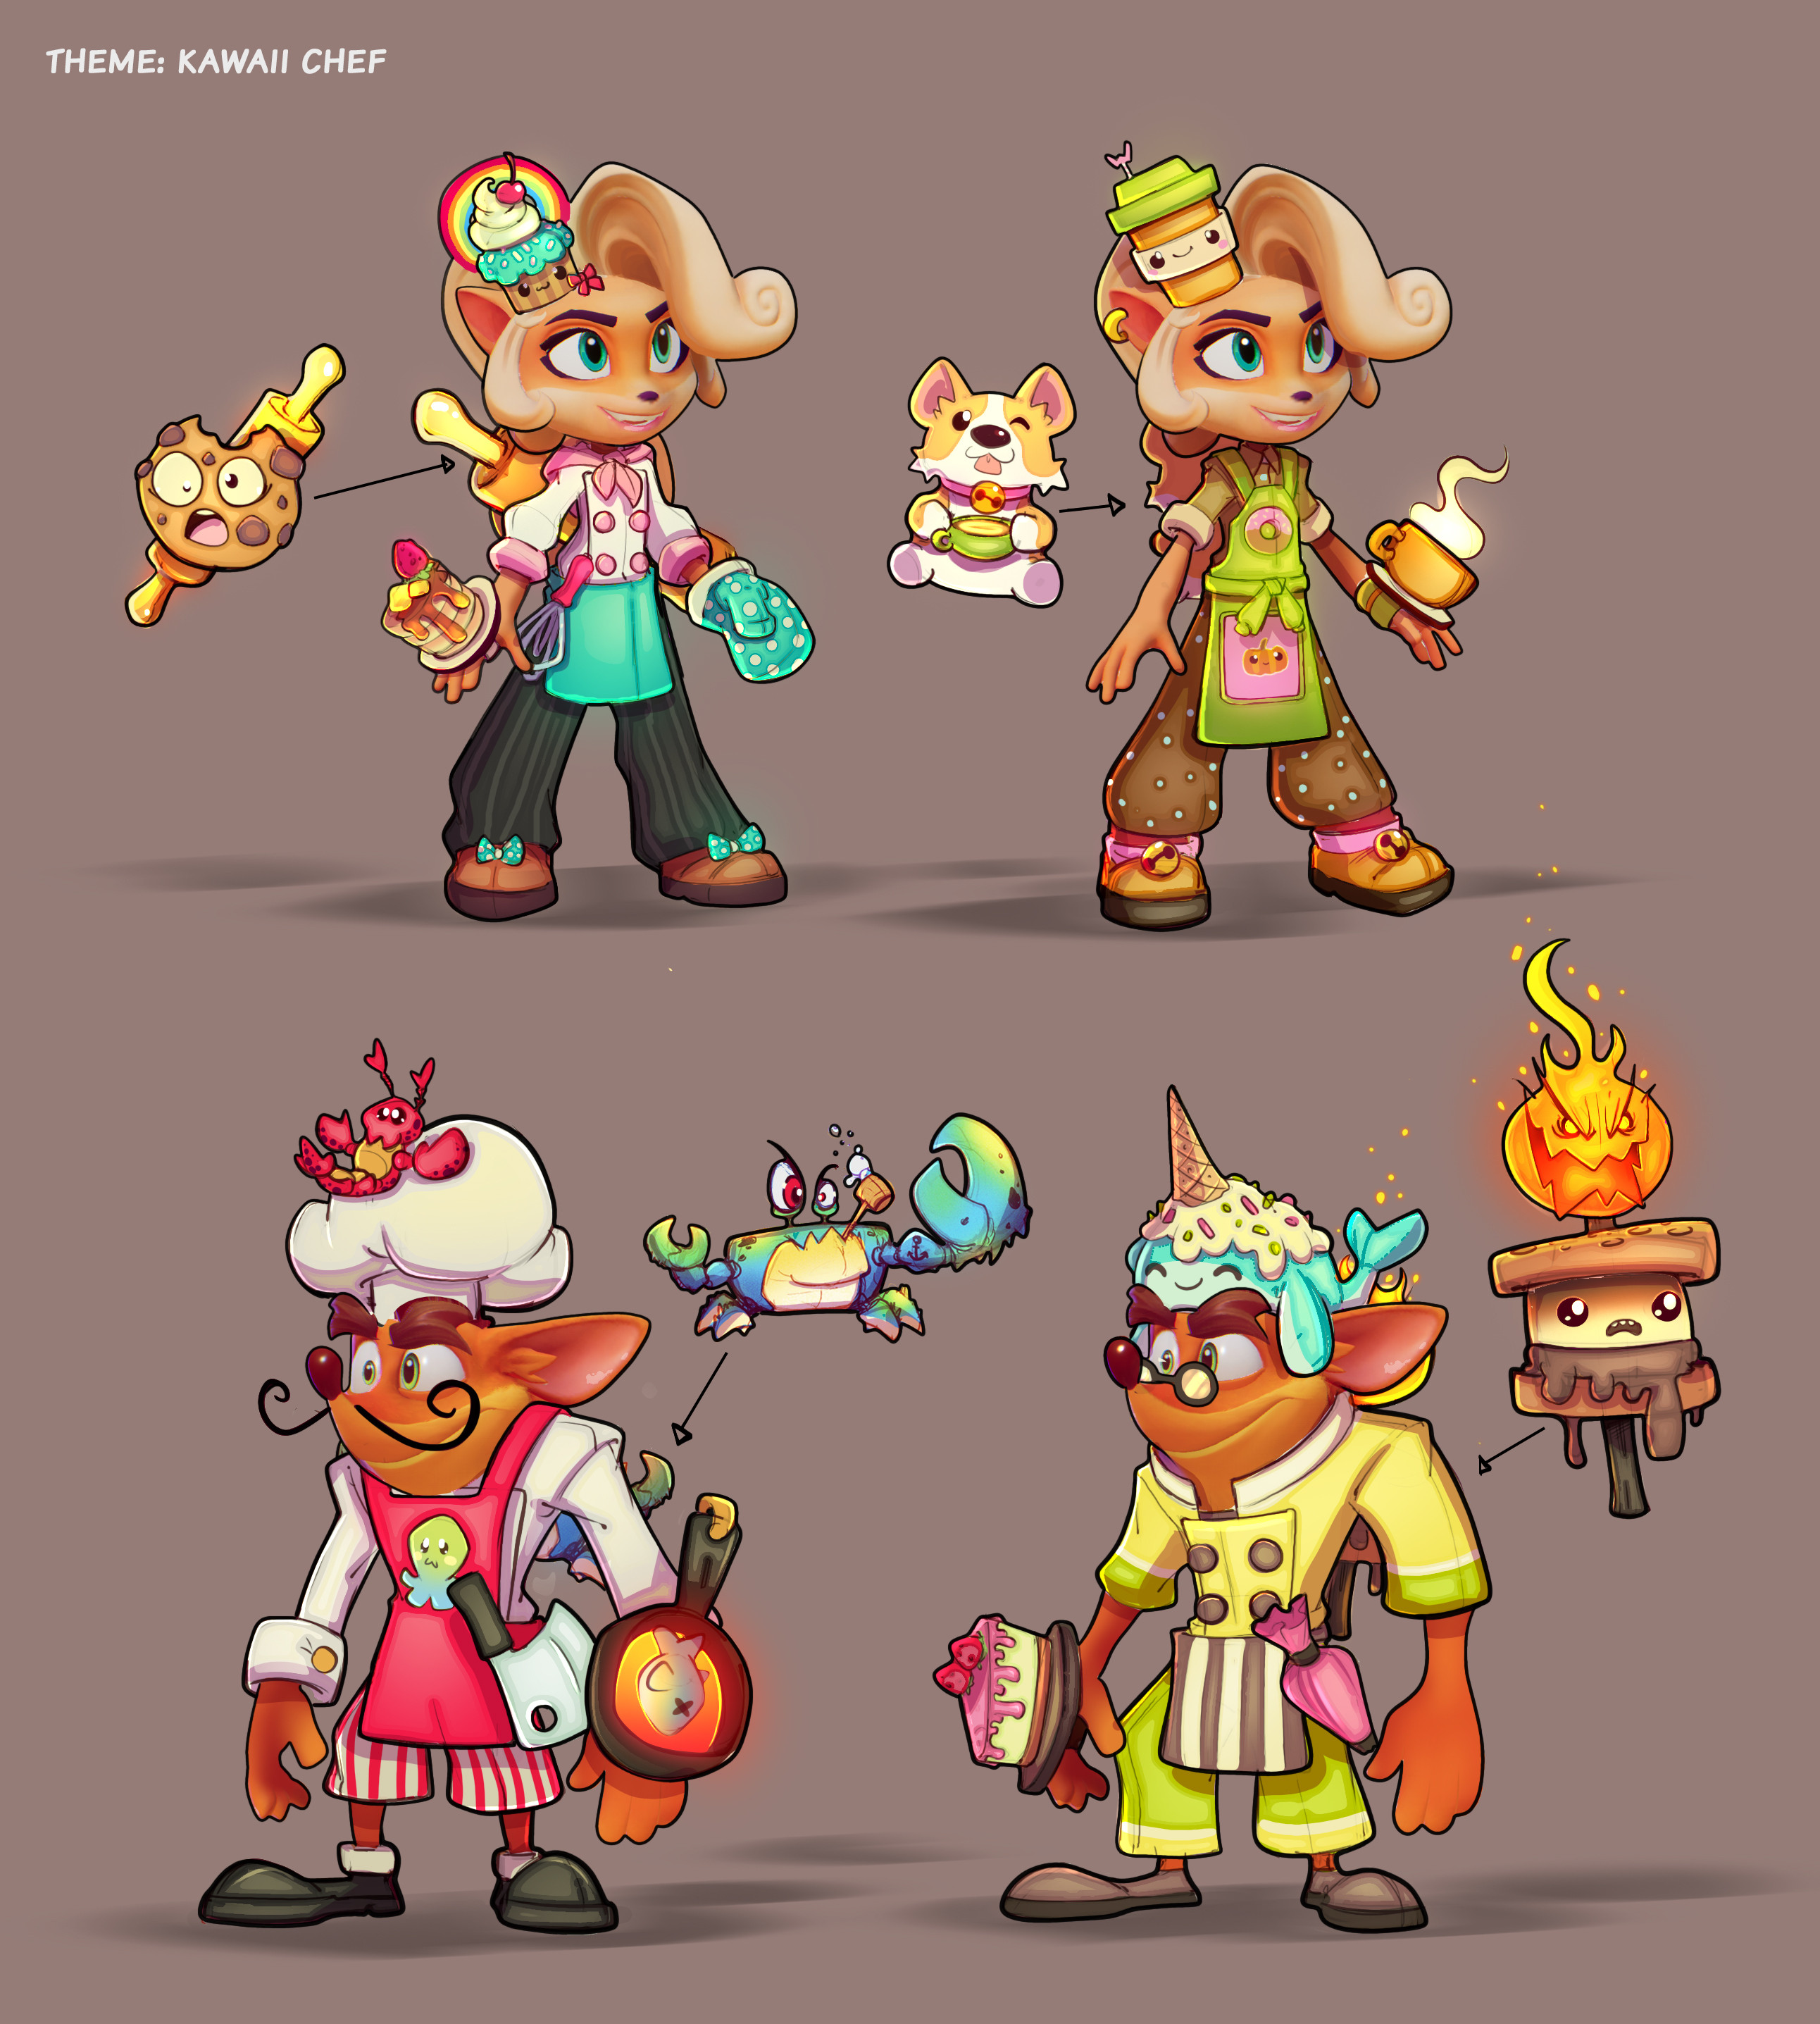 Chef skins ideations. My fav is the corgi.